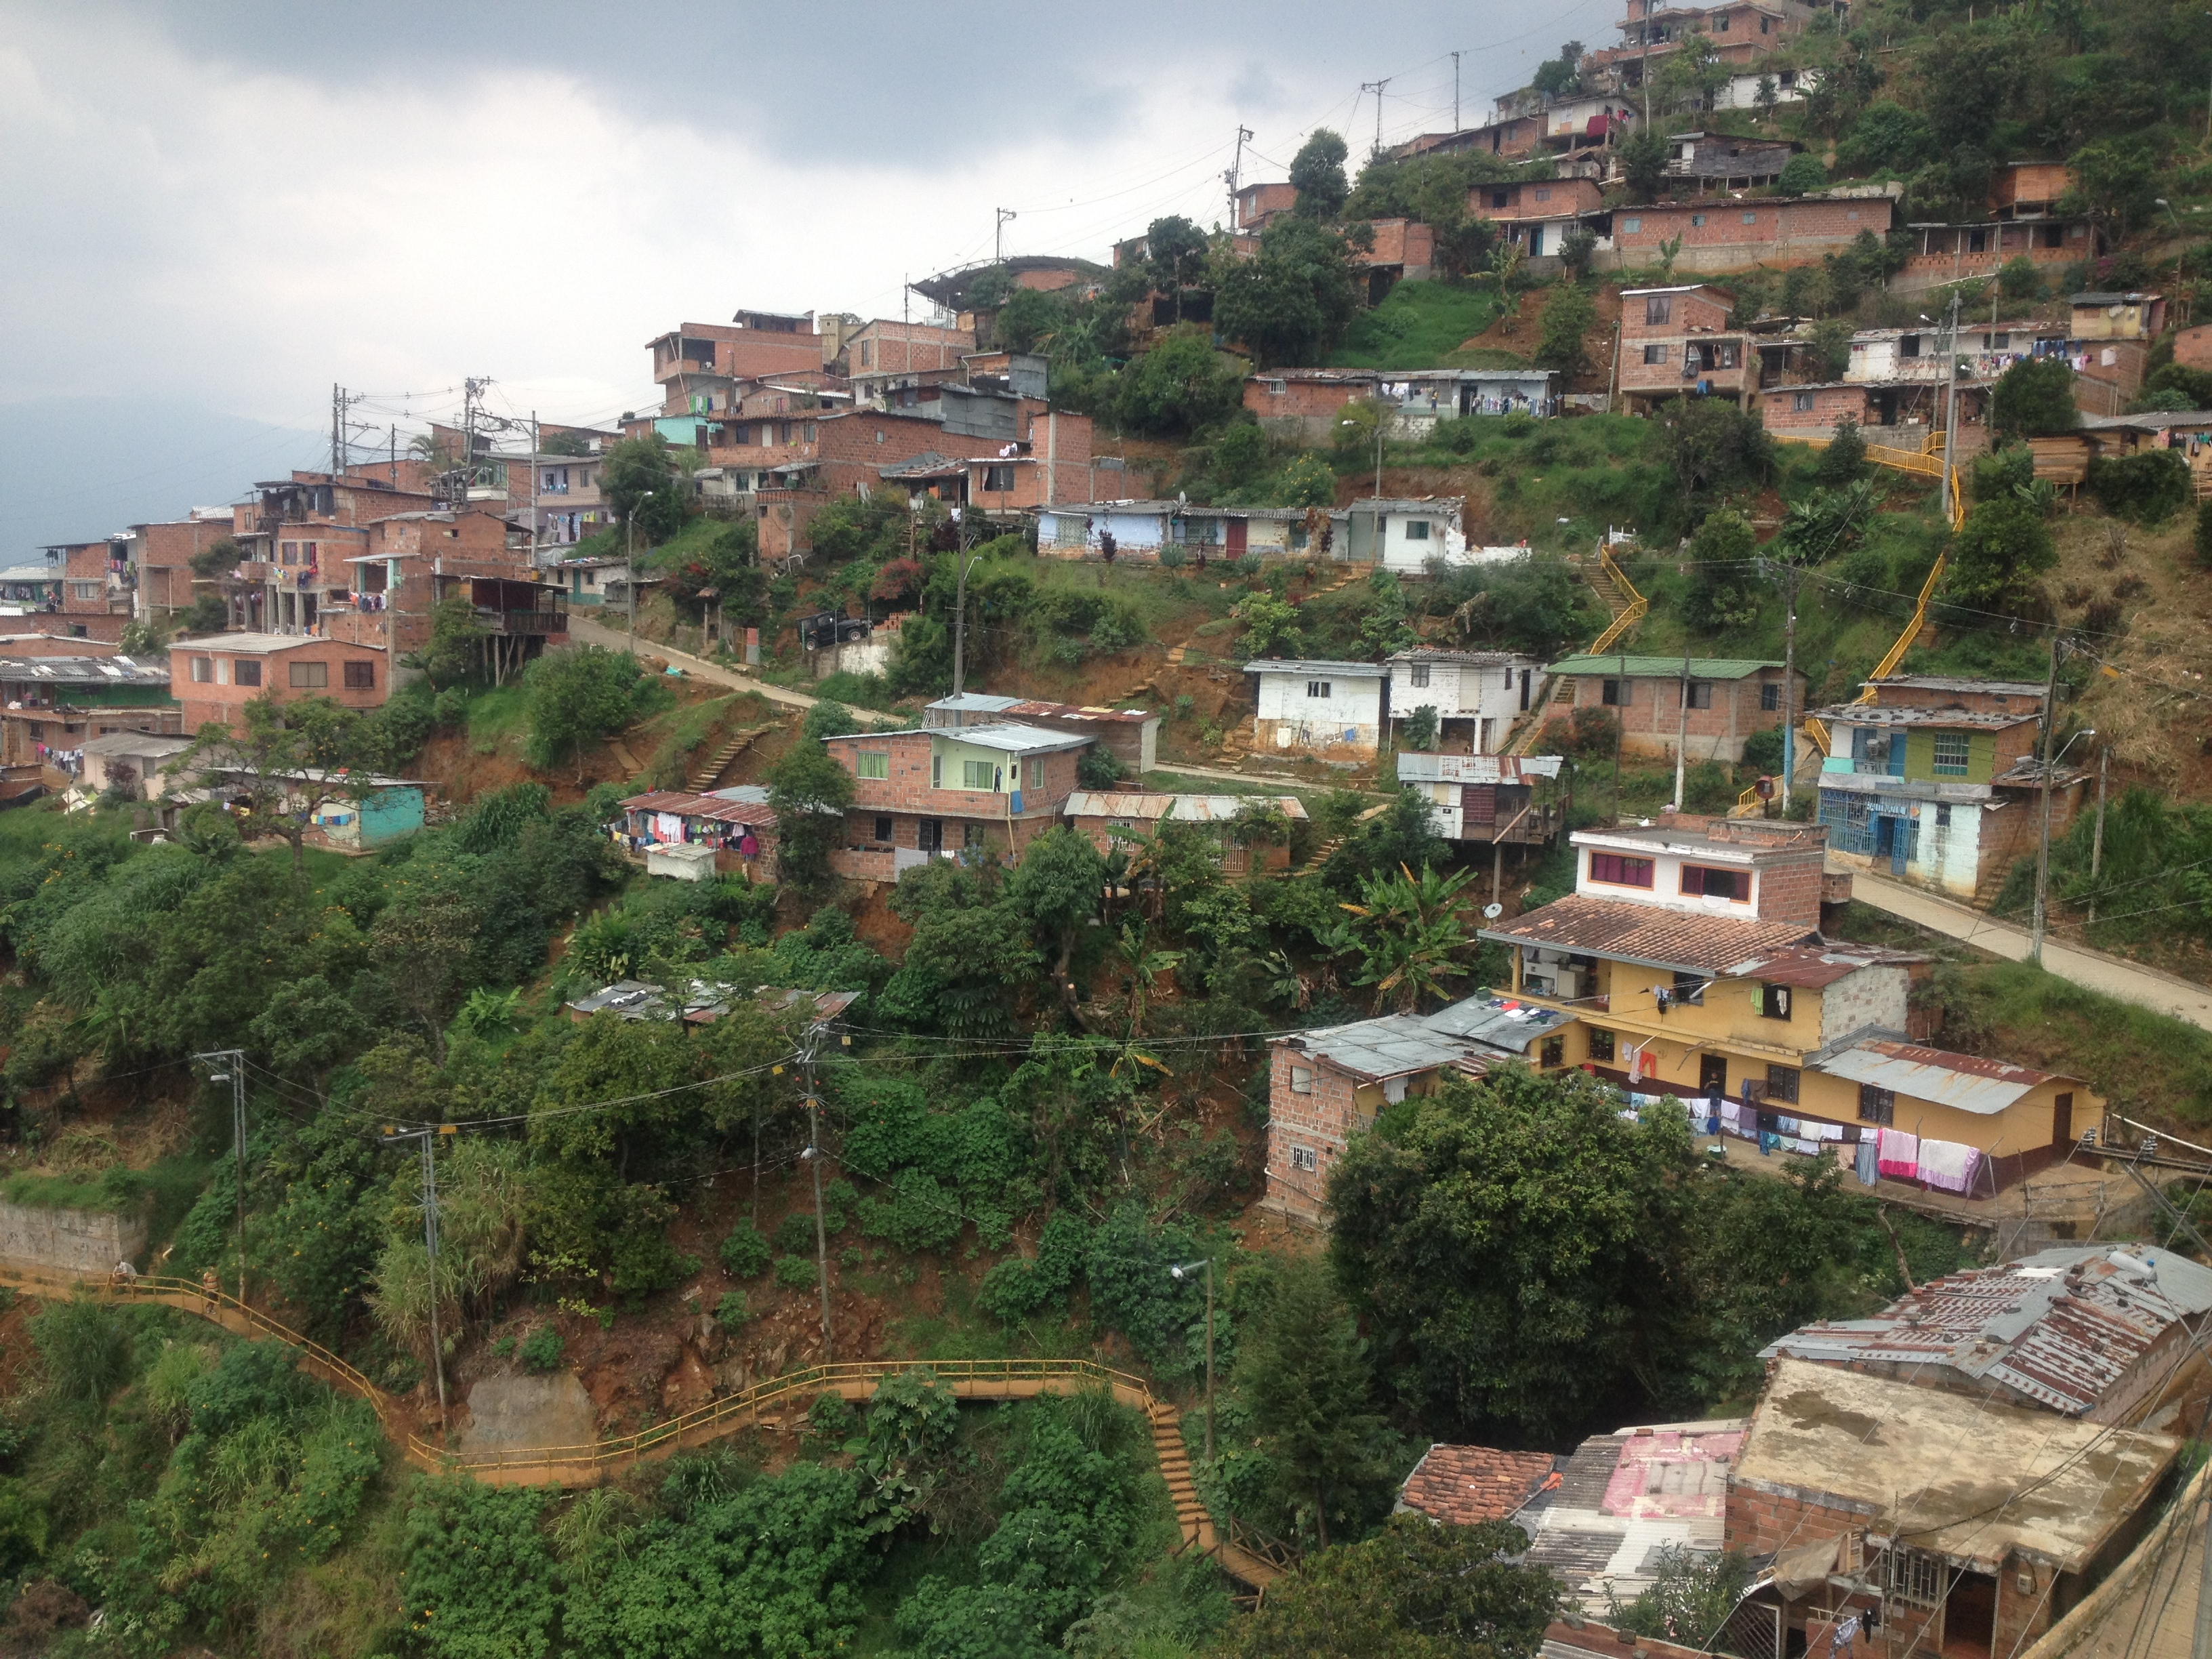 The hills are steep, but people still cram the hillside with homes.